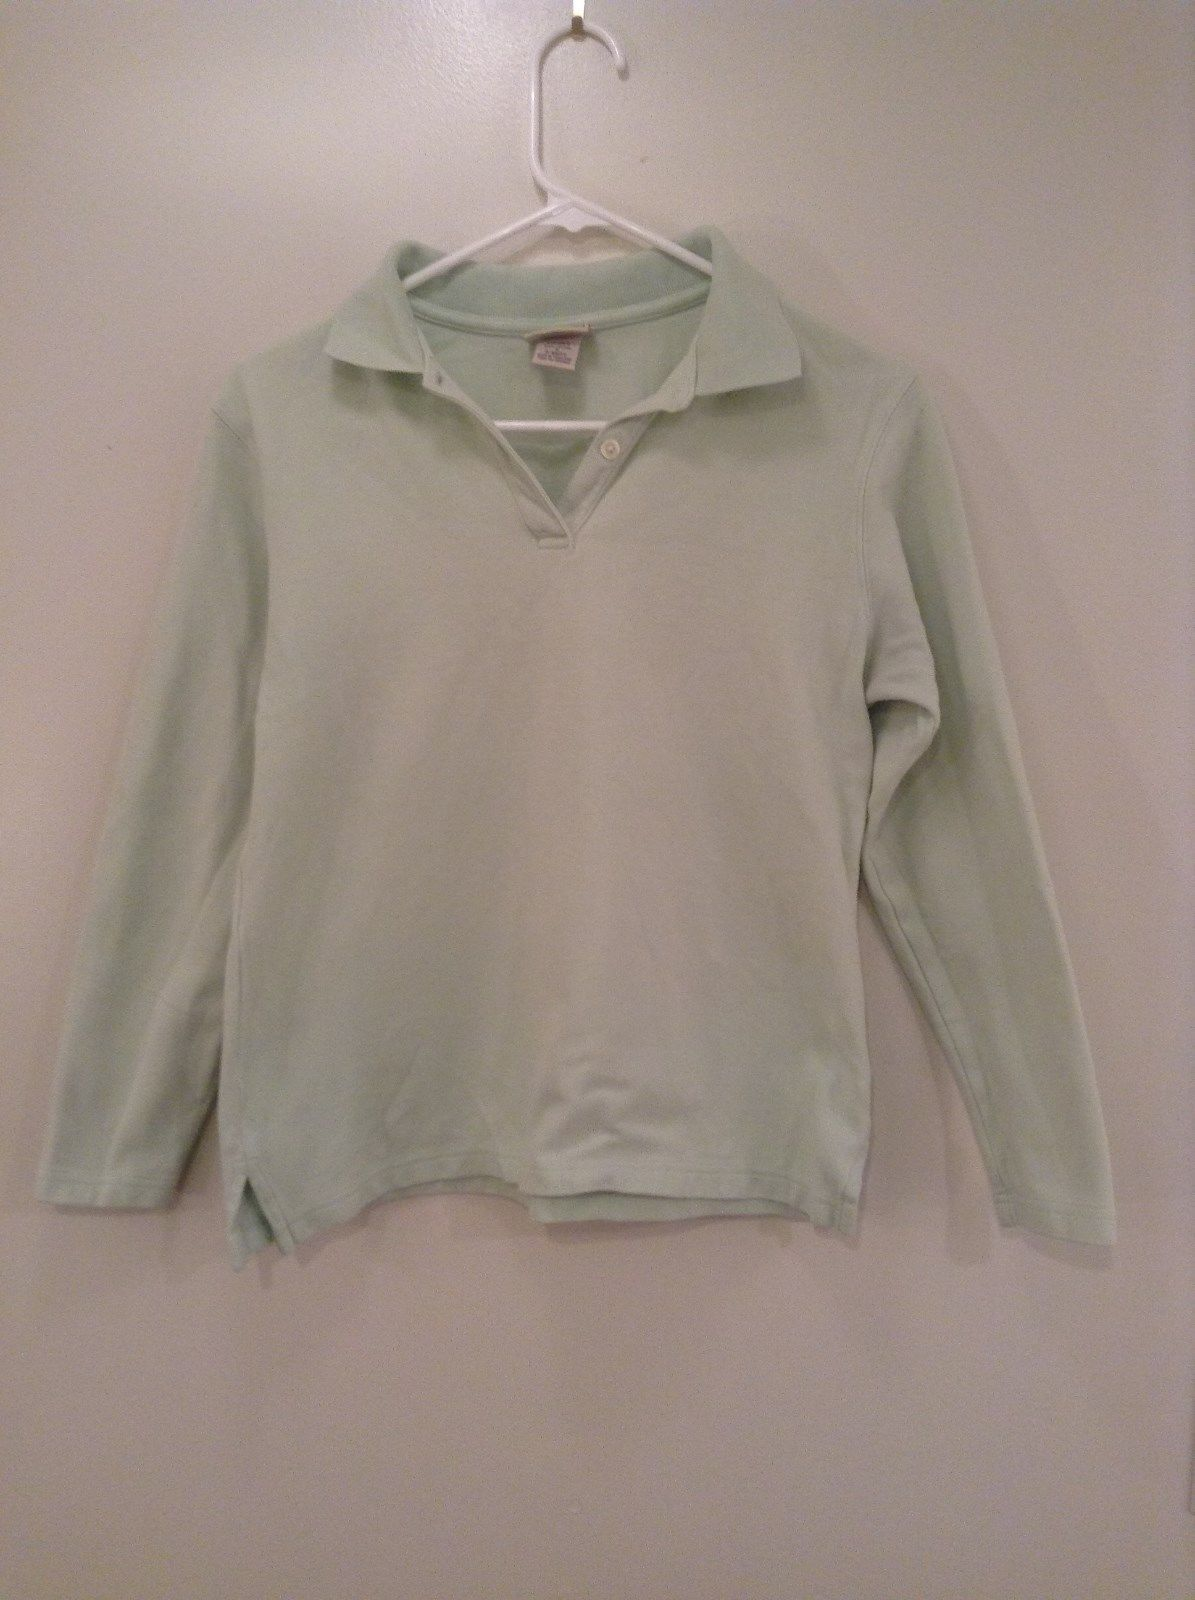 Sea Green L L Bean Long Sleeve 100 Percent Cotton Polo Shirt Size Small